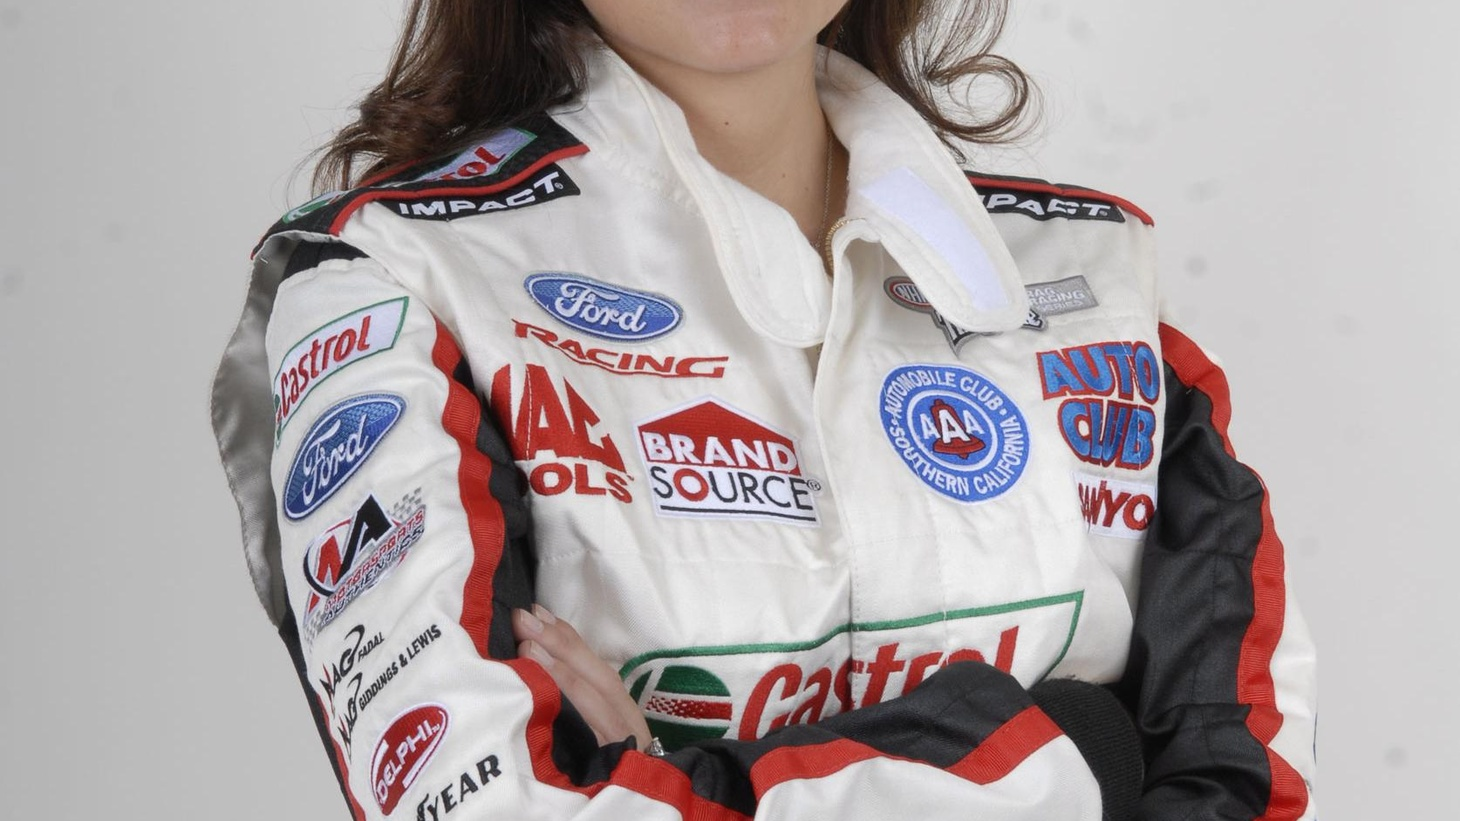 Funny-car drag racer Ashley Force Hood is the daughter of 14-time national champion John Force and the first female winner in her division. Her music choices rang from soundtrack scores and hard rock to country and adult contemporary. She chooses a track that exemplifies her high speed sport and surprises us with the song she listens to before she races...